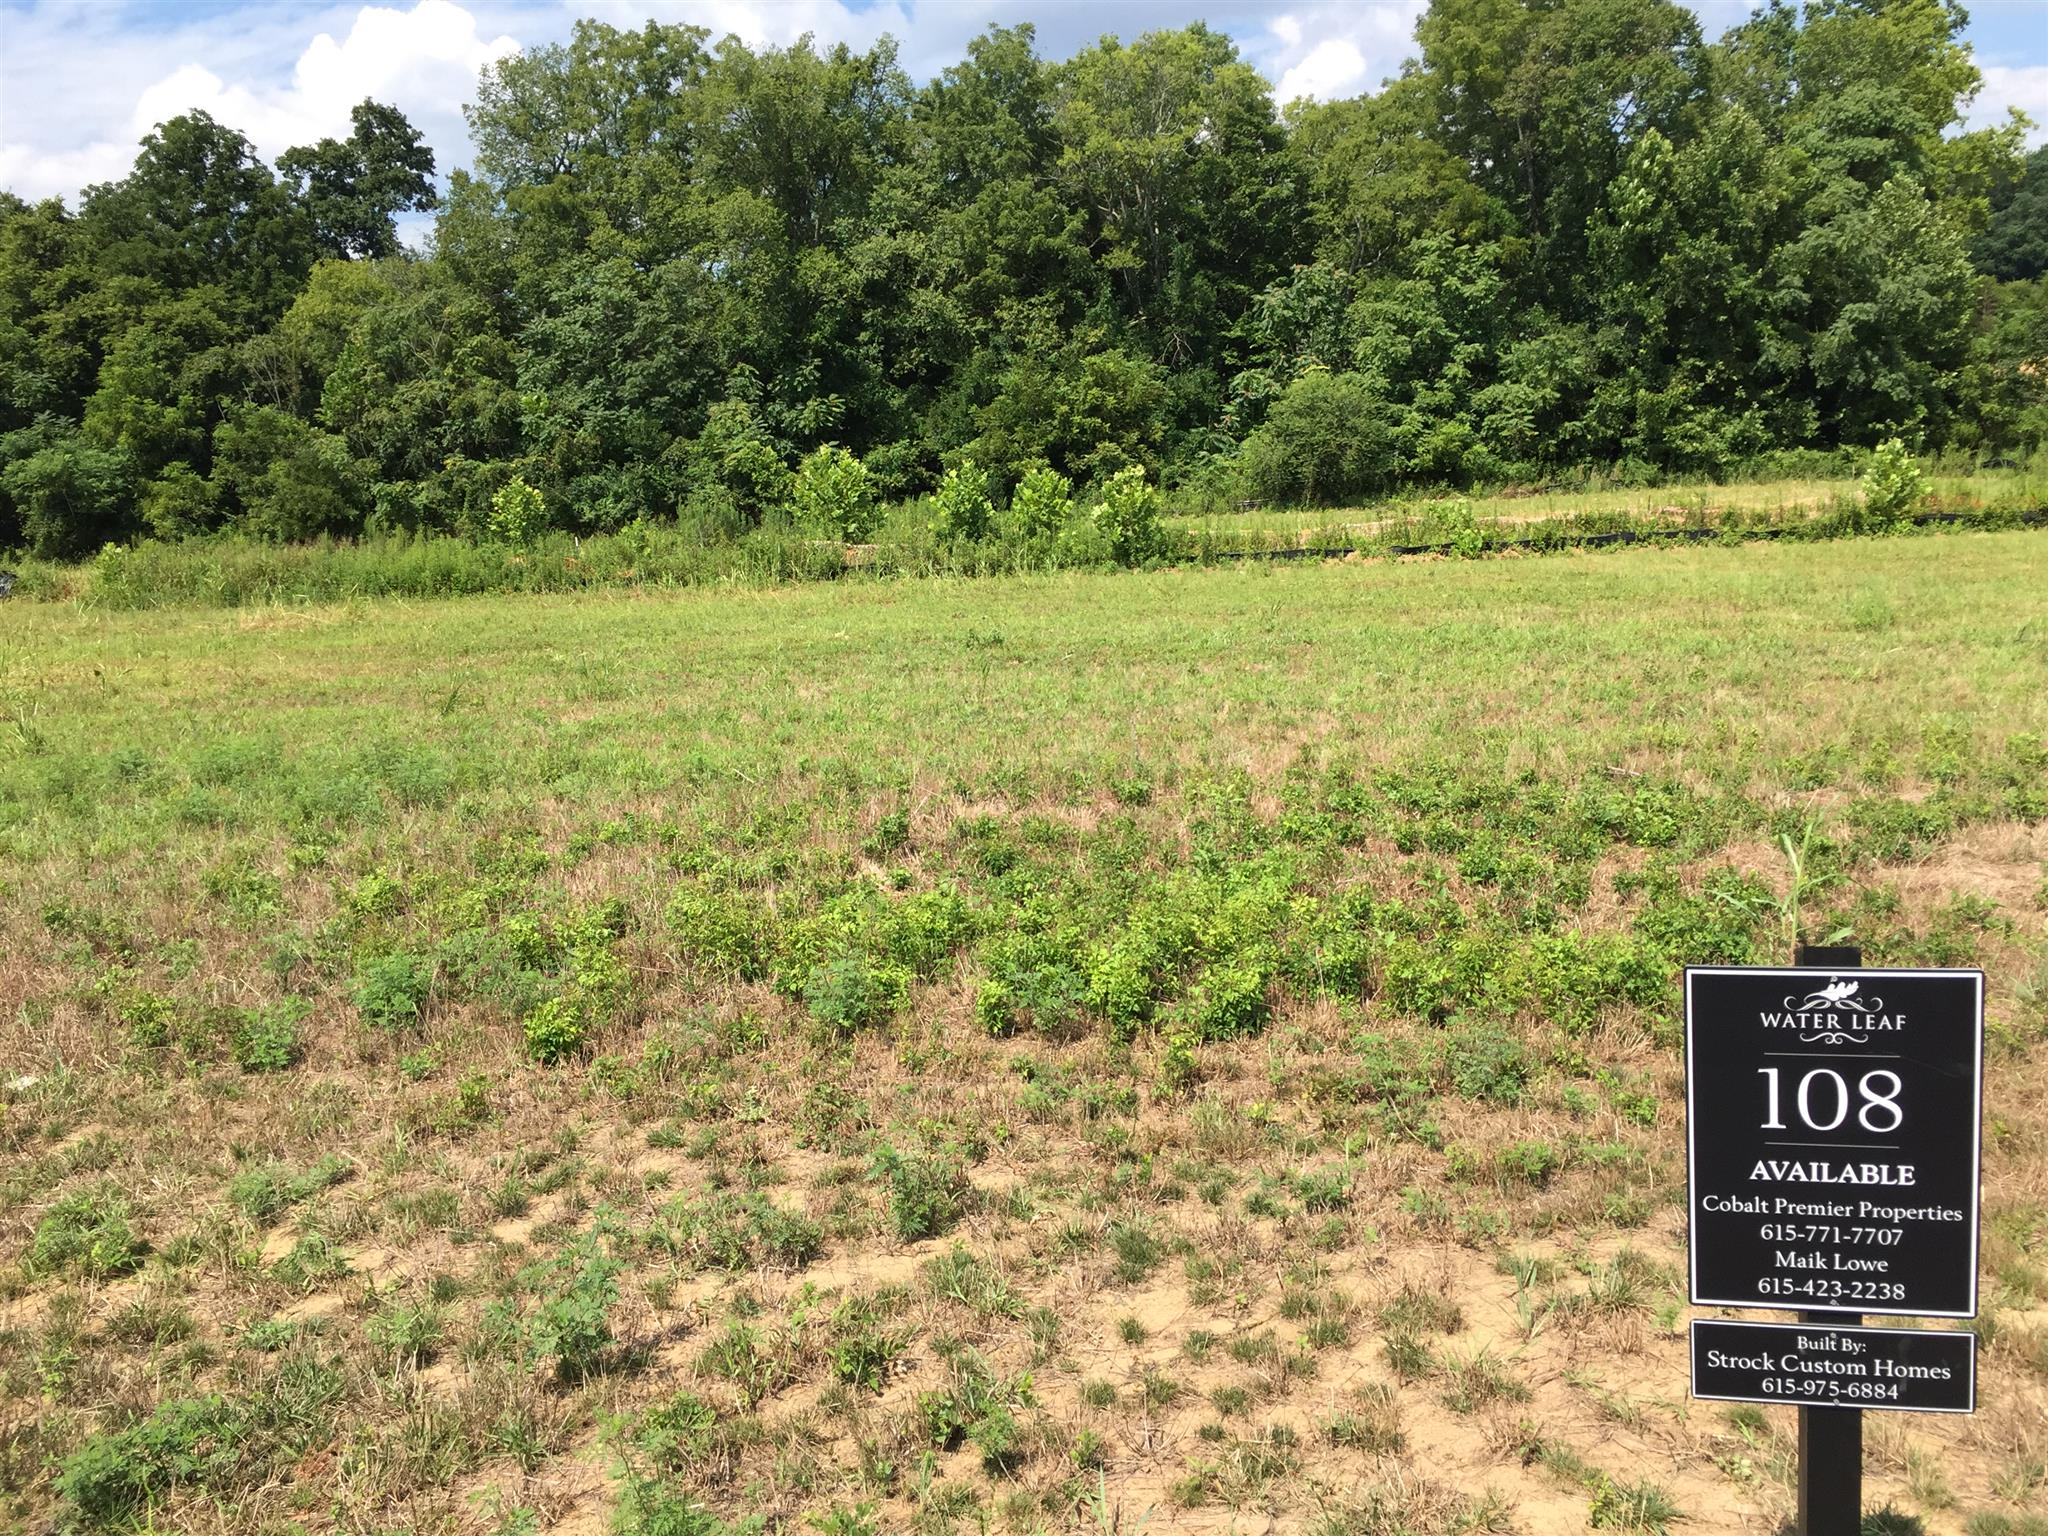 5034 Water Leaf Dr (lot 108), Franklin, TN 37064 - Franklin, TN real estate listing